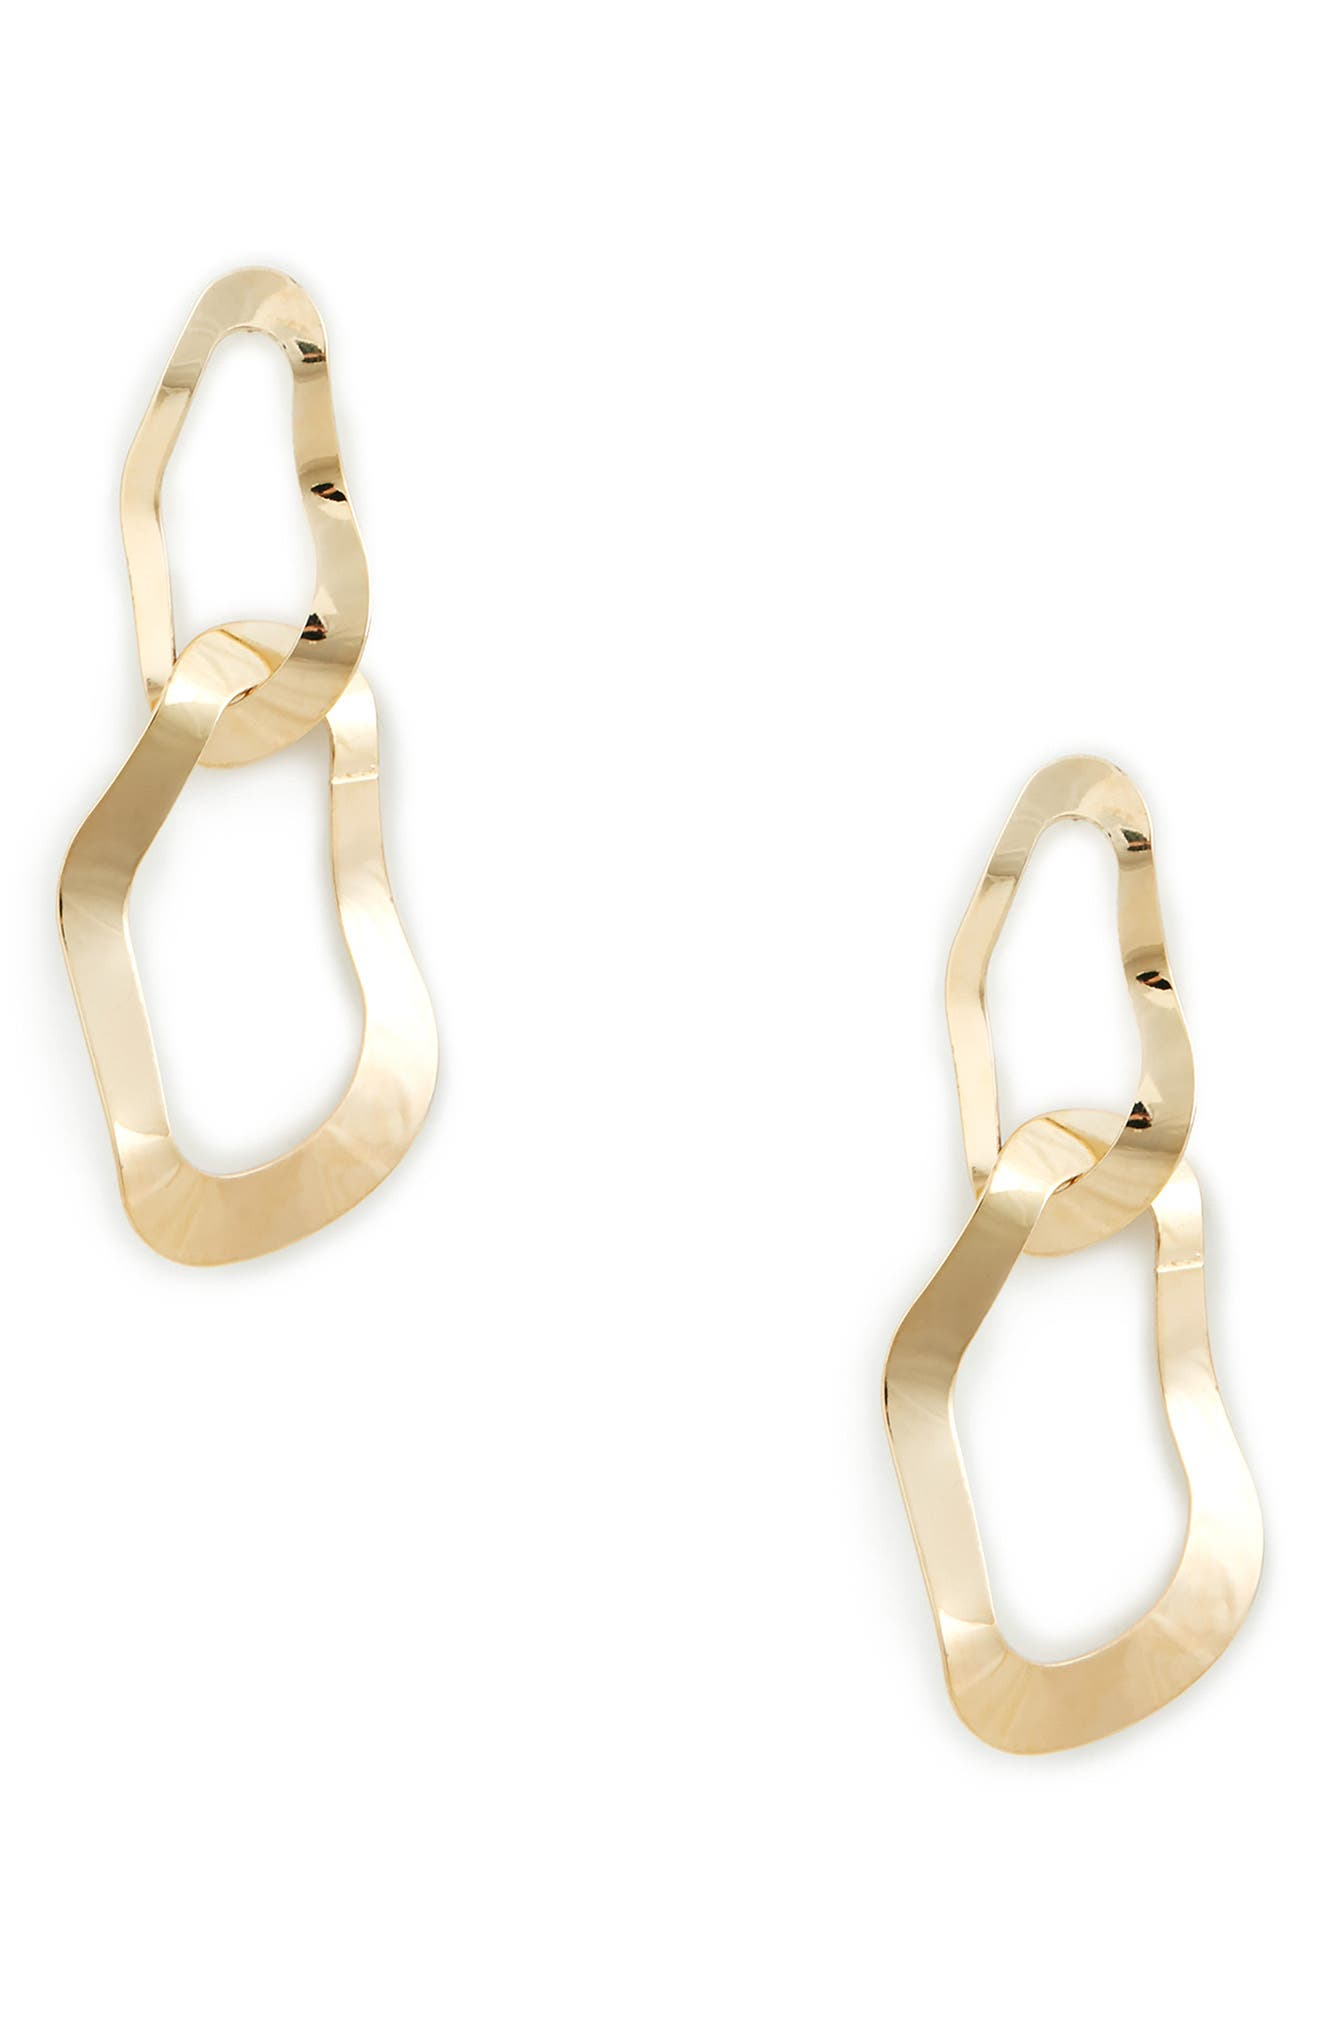 Twisted Metal Statement Earrings,                         Main,                         color, Gold